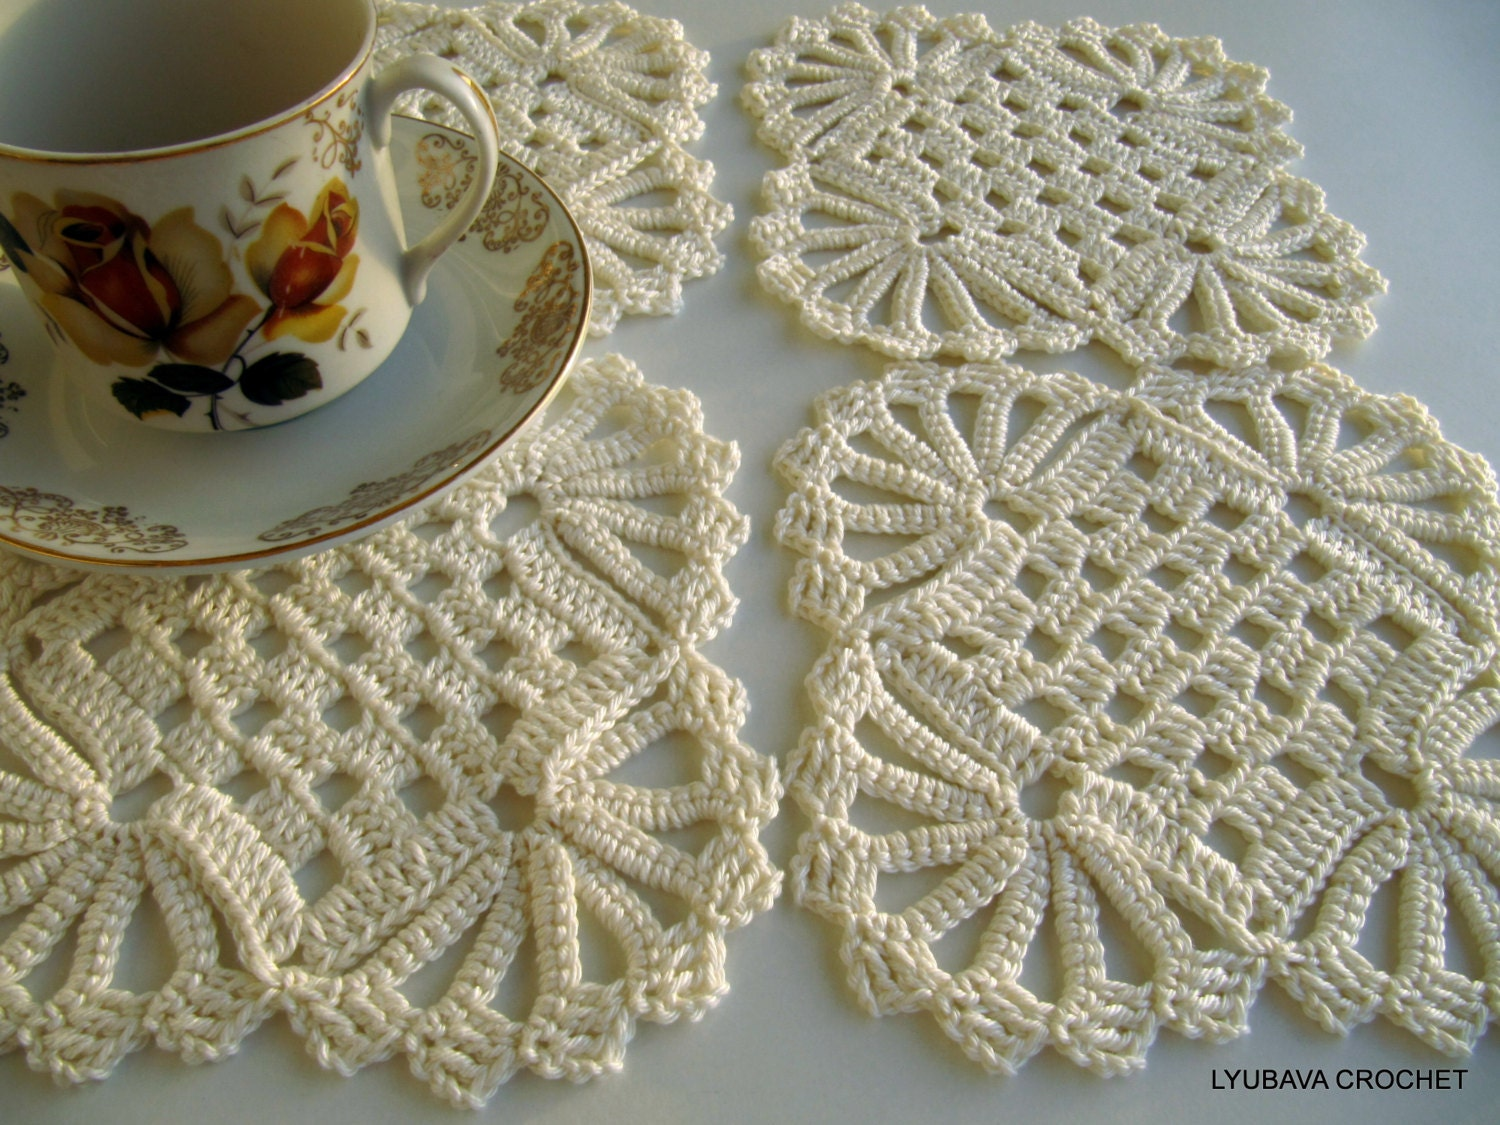 Crochet Stitches On Pinterest : Discover thousands of images about Crochet Top Patterns on Pinterest ...